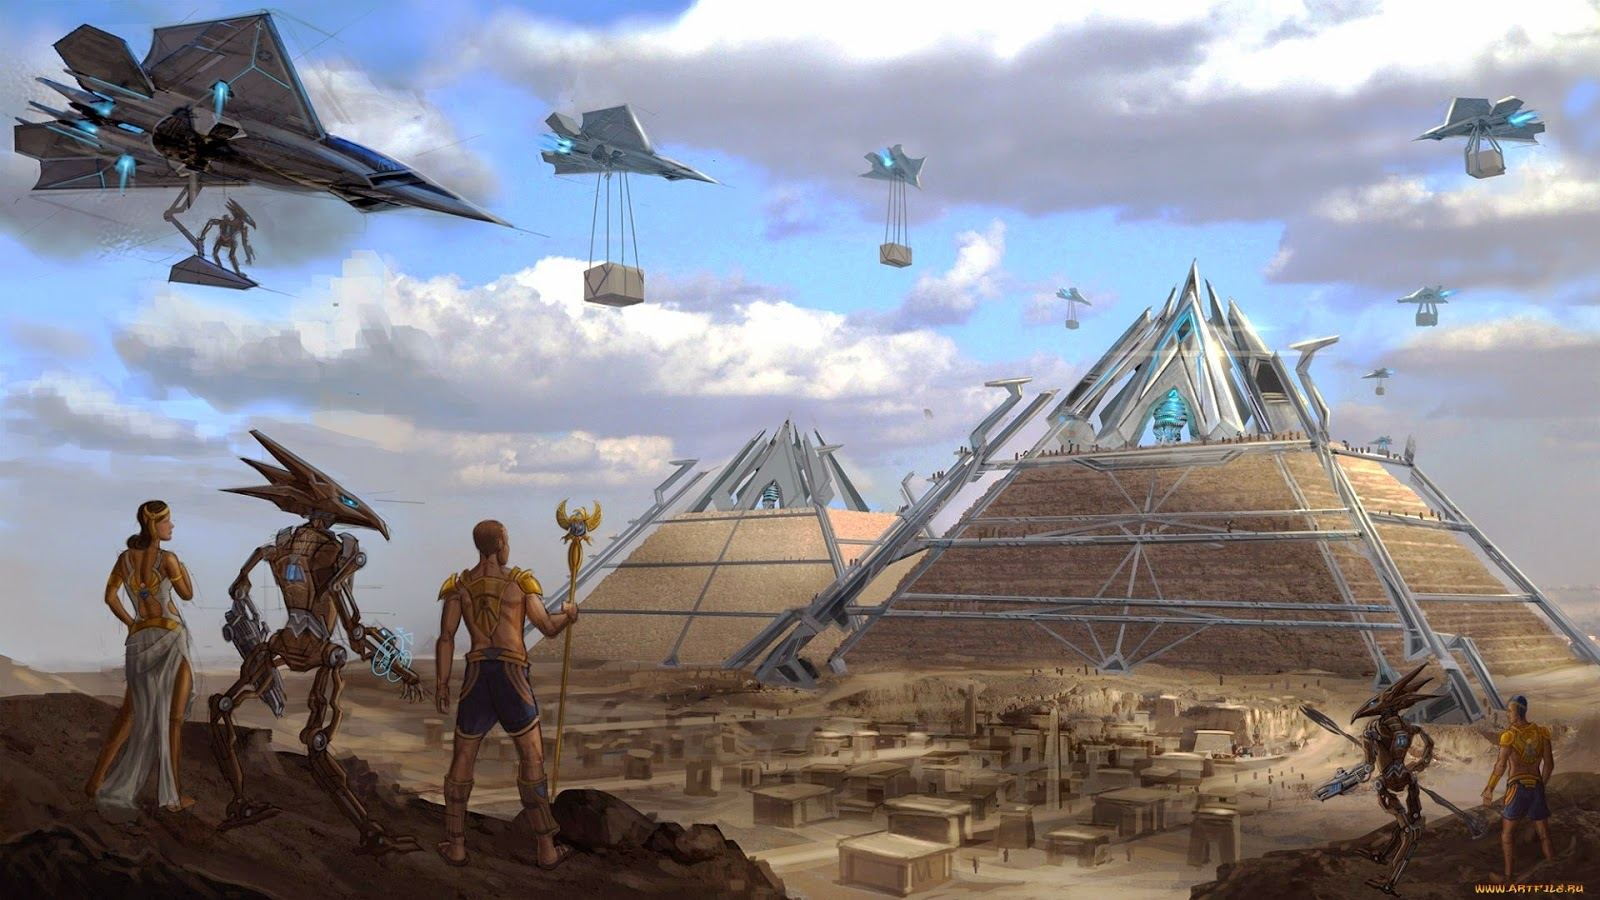 Elon Musk tweets that aliens built the pyramids 33